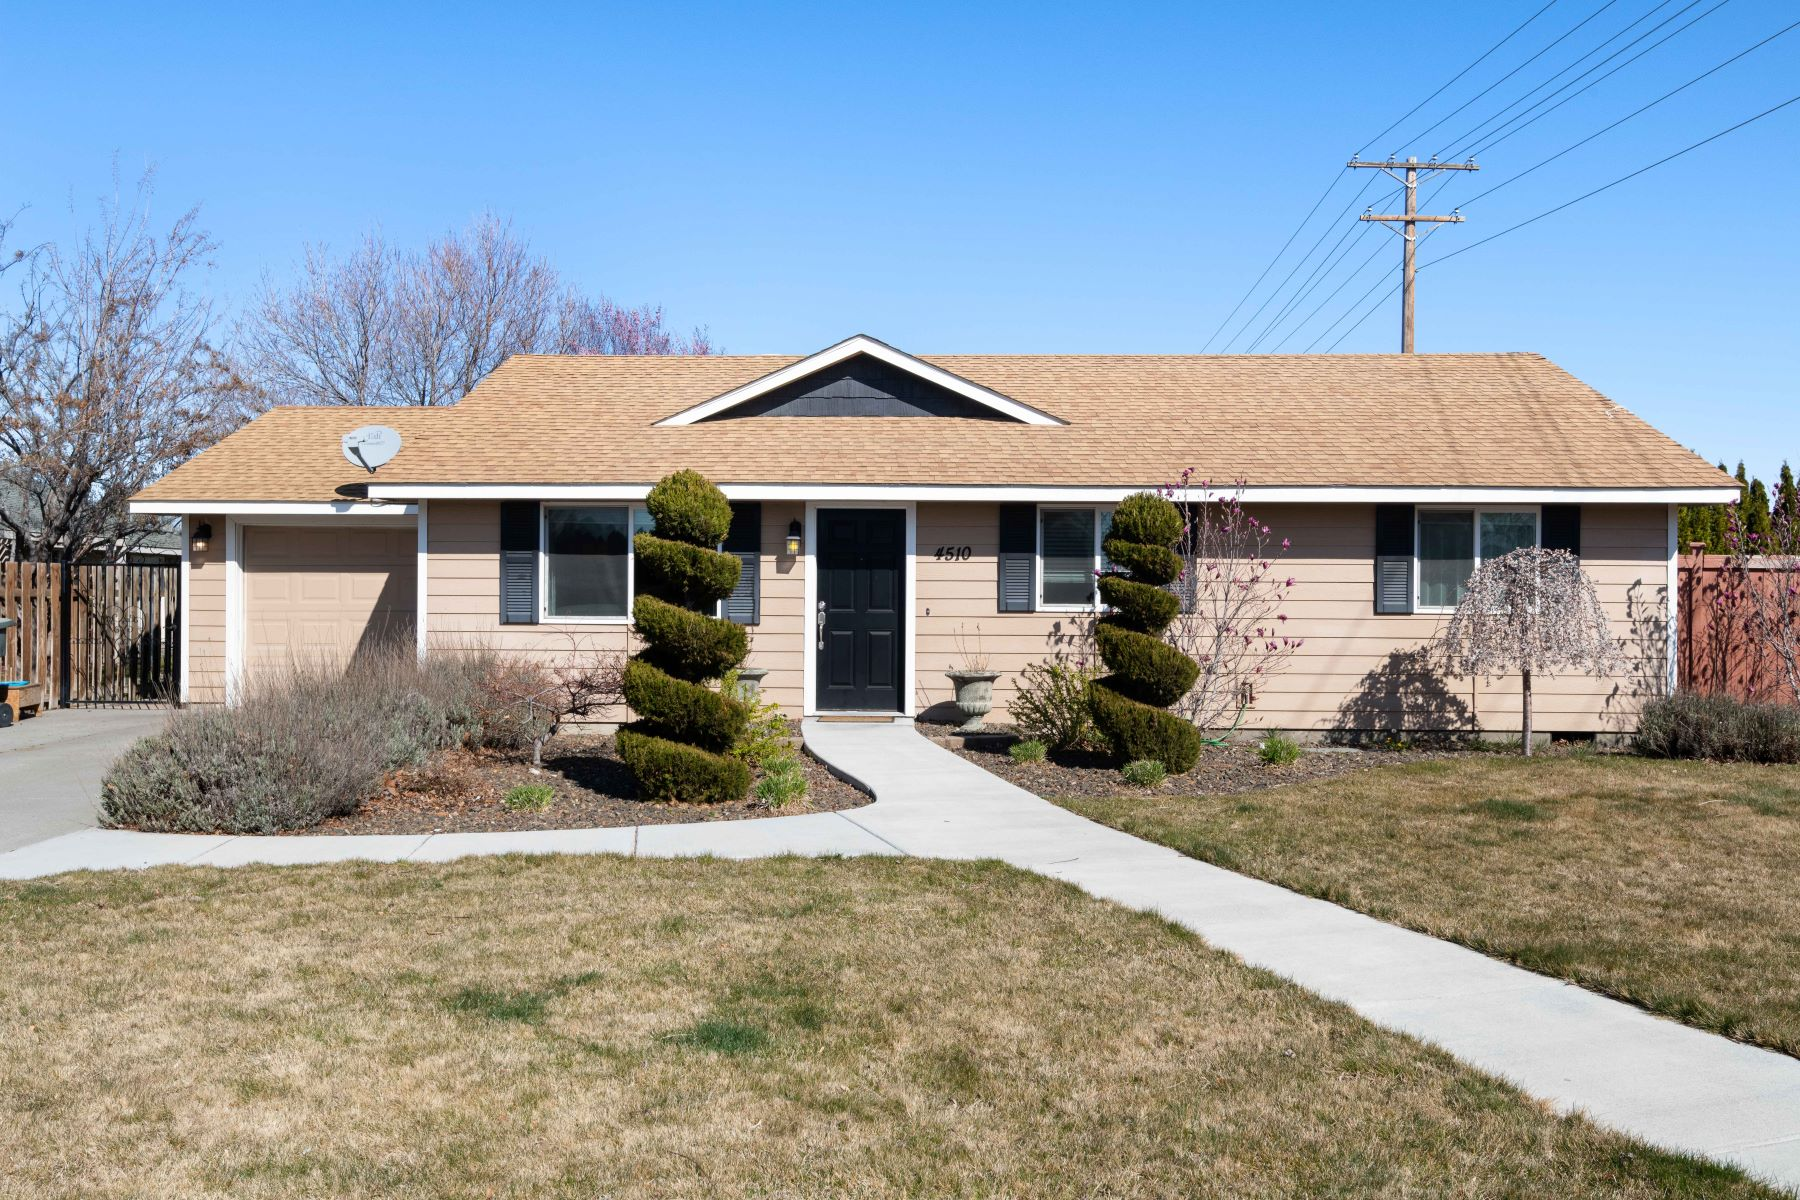 Single Family Homes for Sale at Incredibly Detailed 4510 Holly Way West Richland, Washington 99353 United States